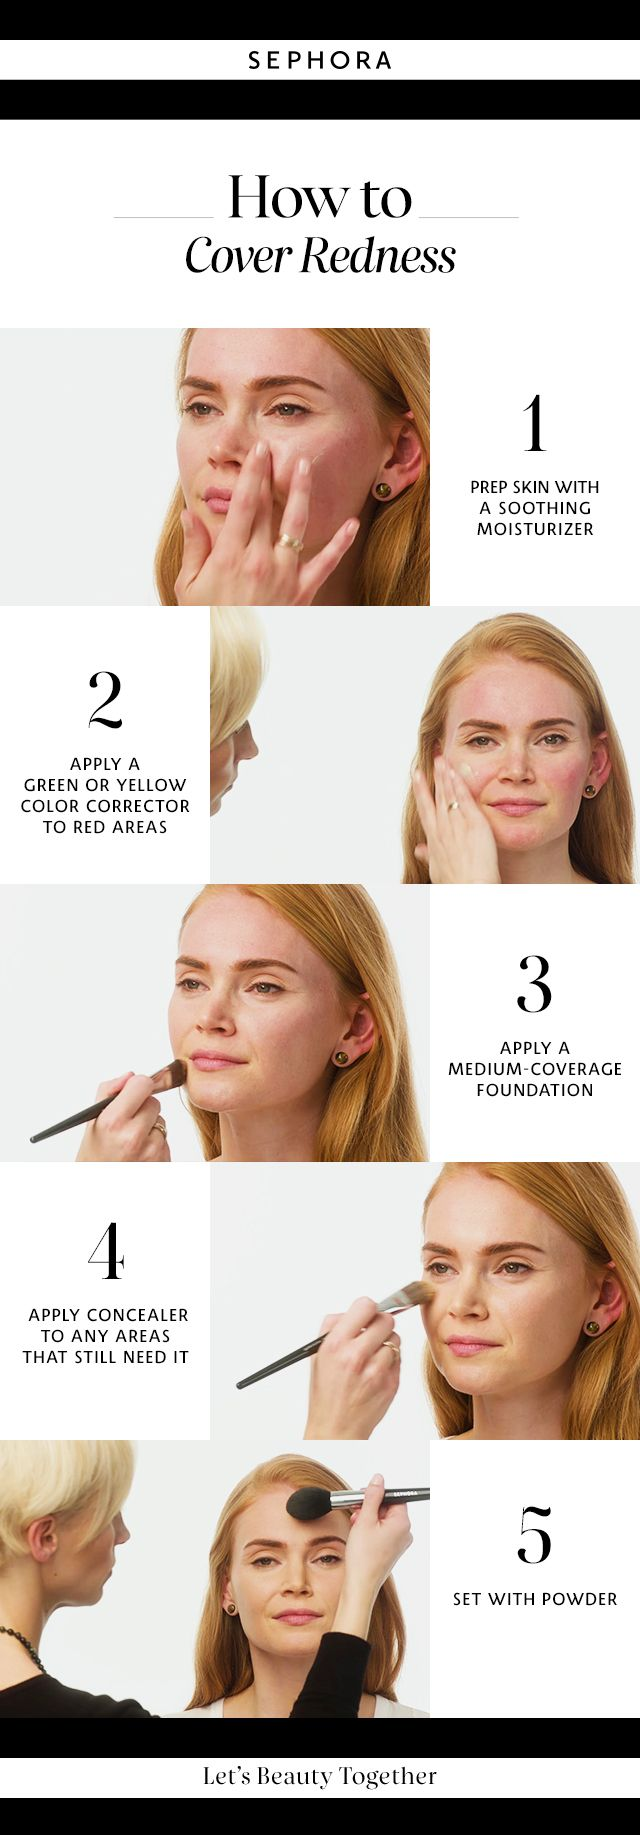 Learn how to cover redness. Want more details? Click the image to watch a full tutorial on our YouTube channel.